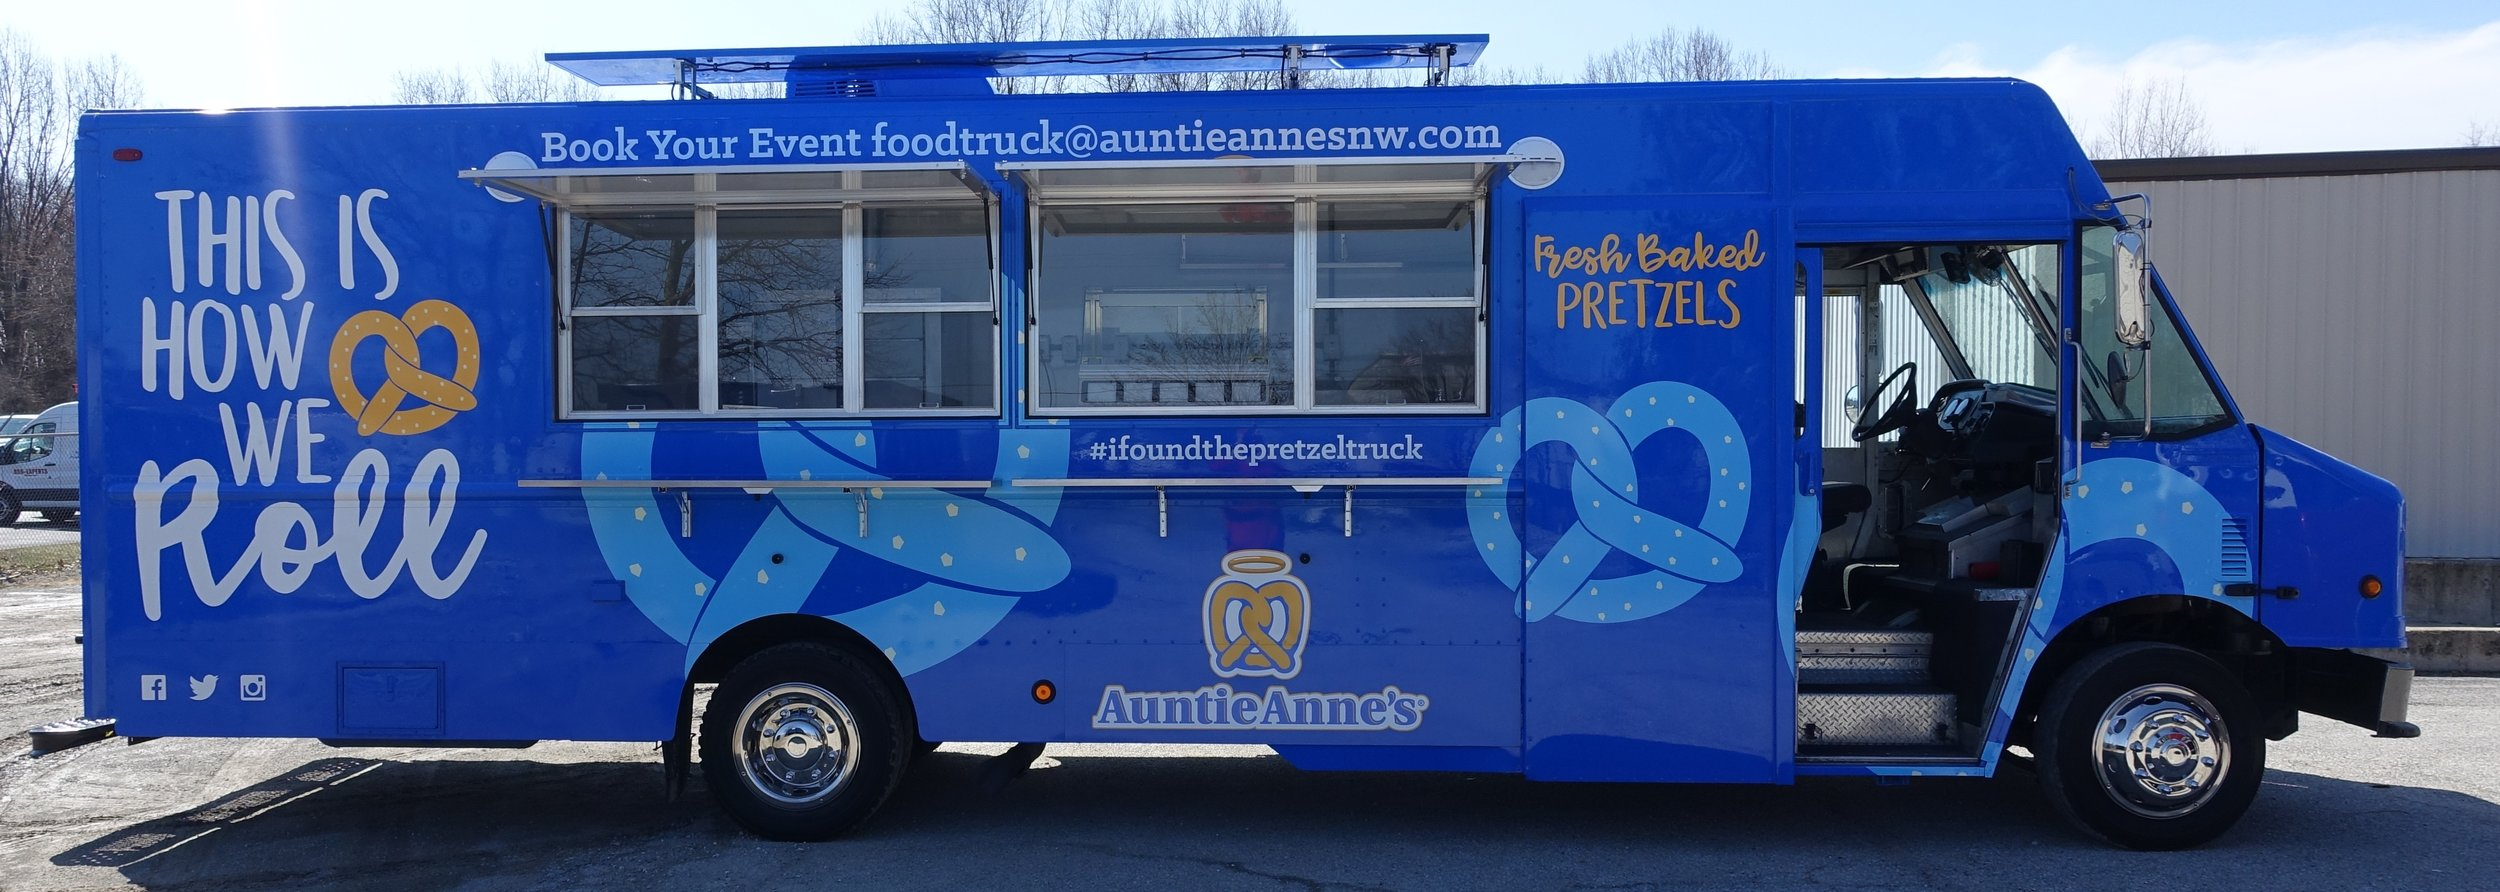 Auntie Anne's Pretzels   - Pretzels, Dips, Pretzel Dogs, LemonadeFind on FacebookTwitter: @anne_spoWebsite: http://www.auntieannes.comPhone: 425-774-3338Email: slesh@wvs.orgAvailable for cateringAlso serves in: Everett, Mount Vernon & Snohomish